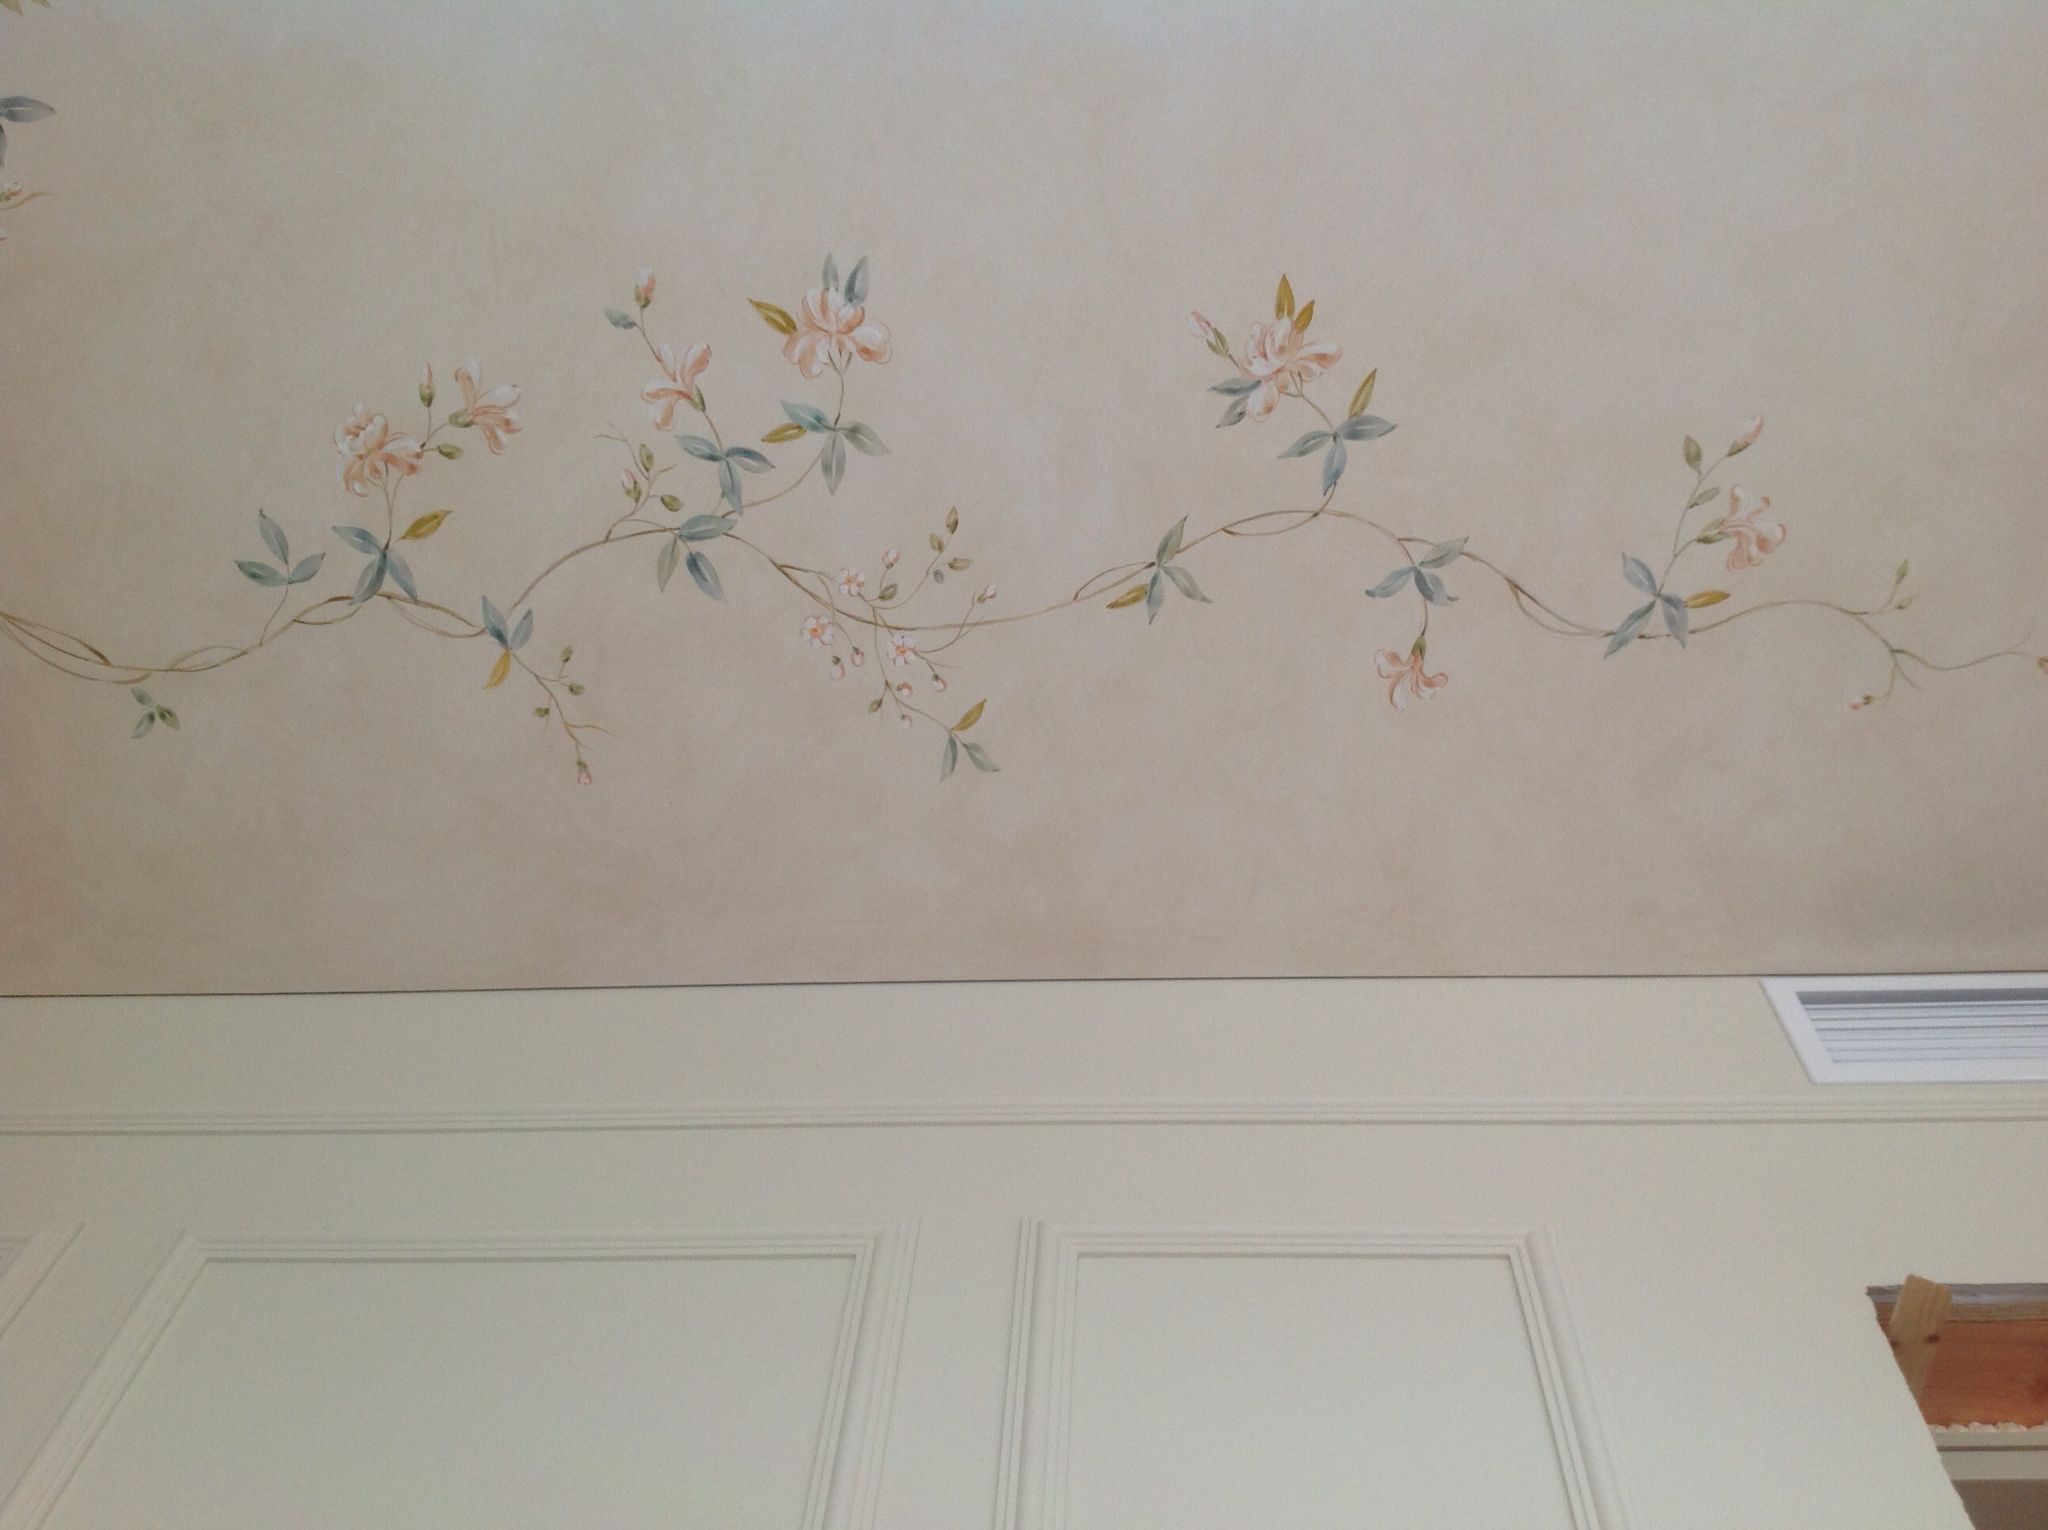 Ceiling list in a bedroom